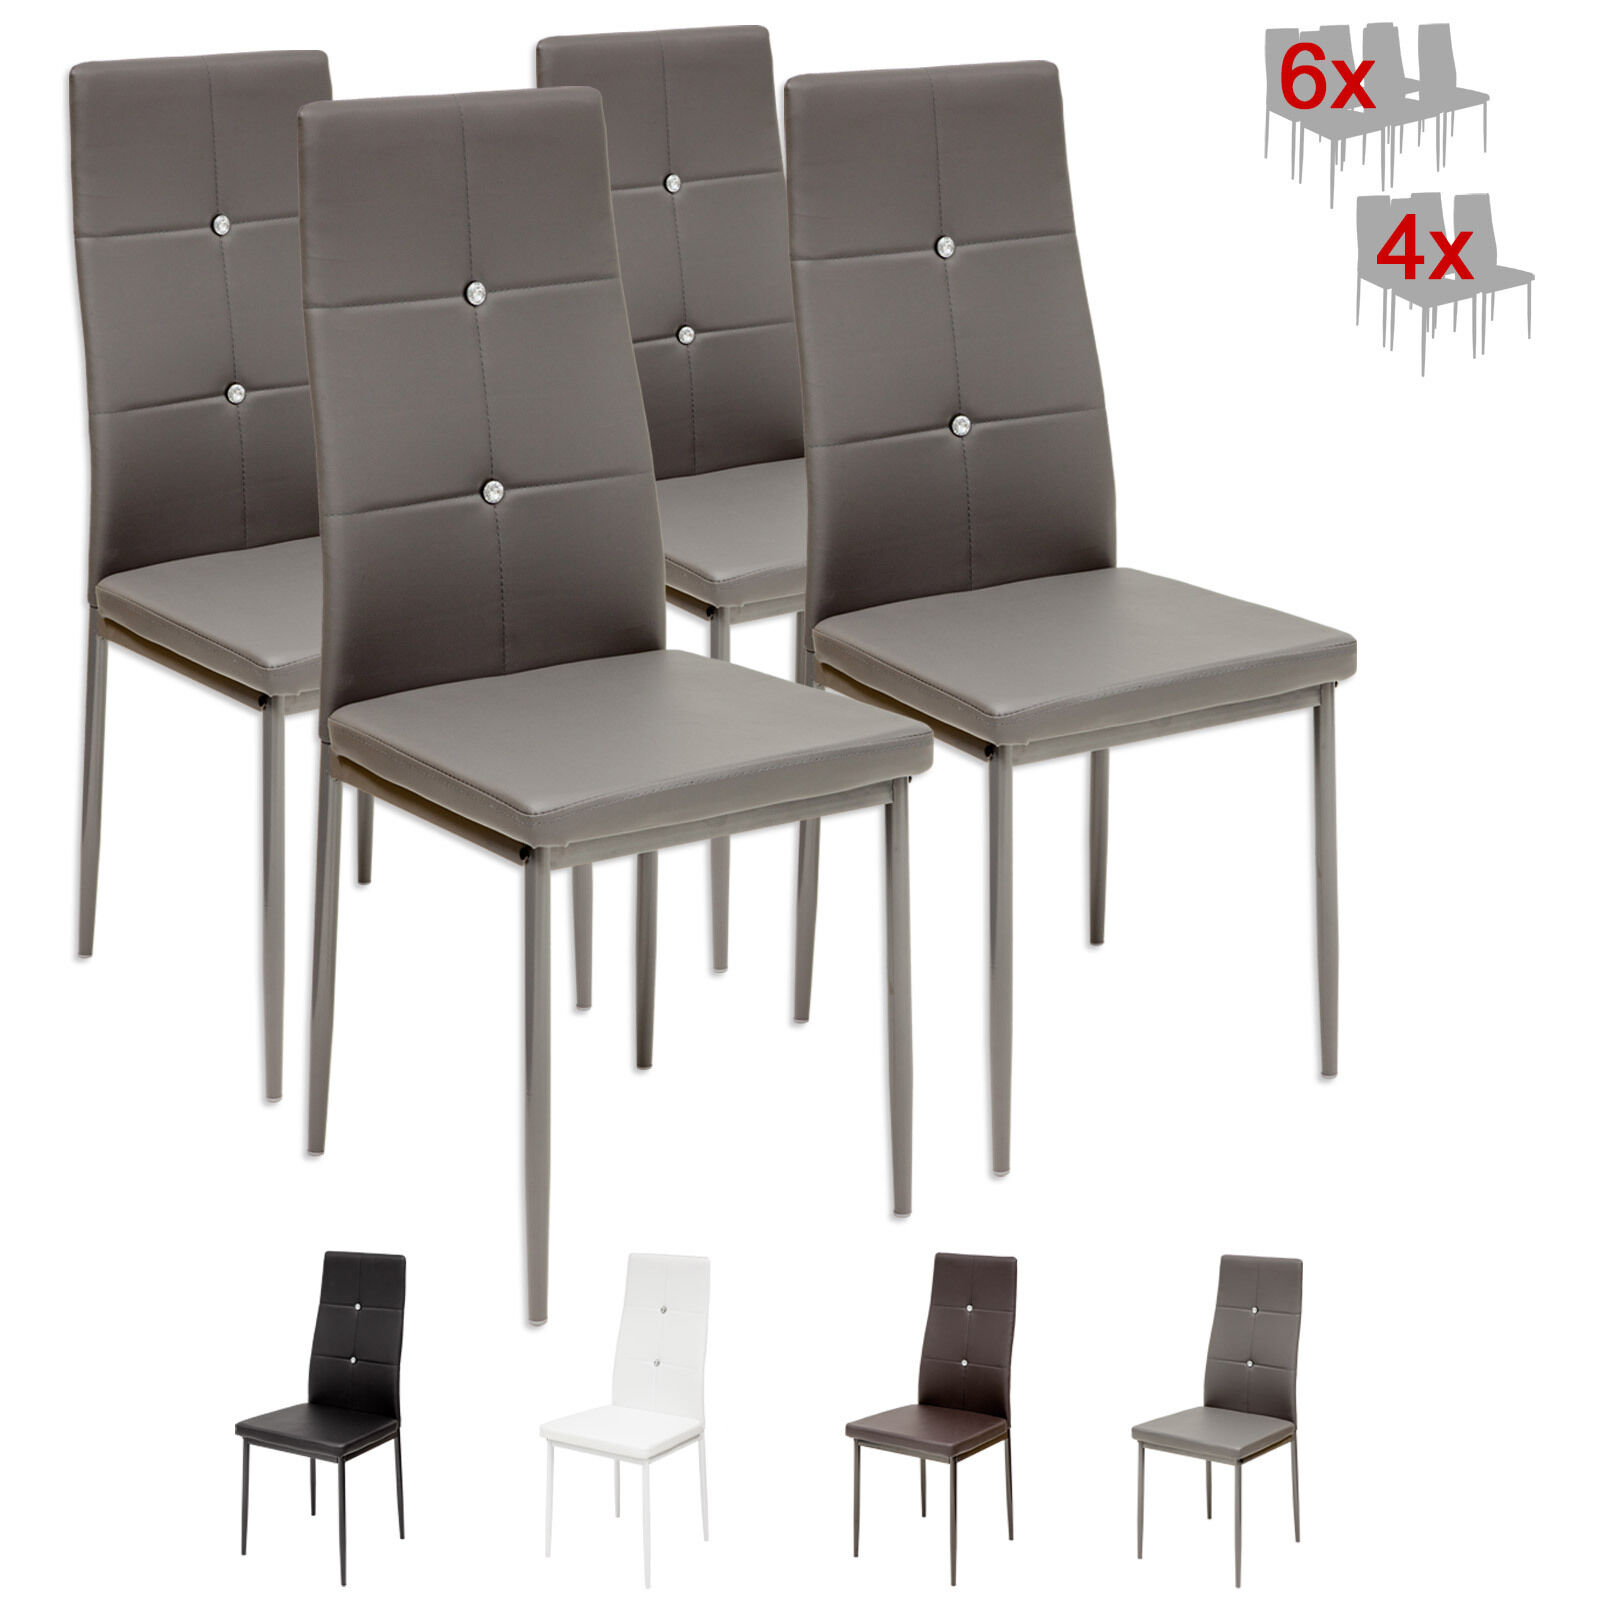 4 x esszimmerst hle diamond grau esszimmerstuhl. Black Bedroom Furniture Sets. Home Design Ideas